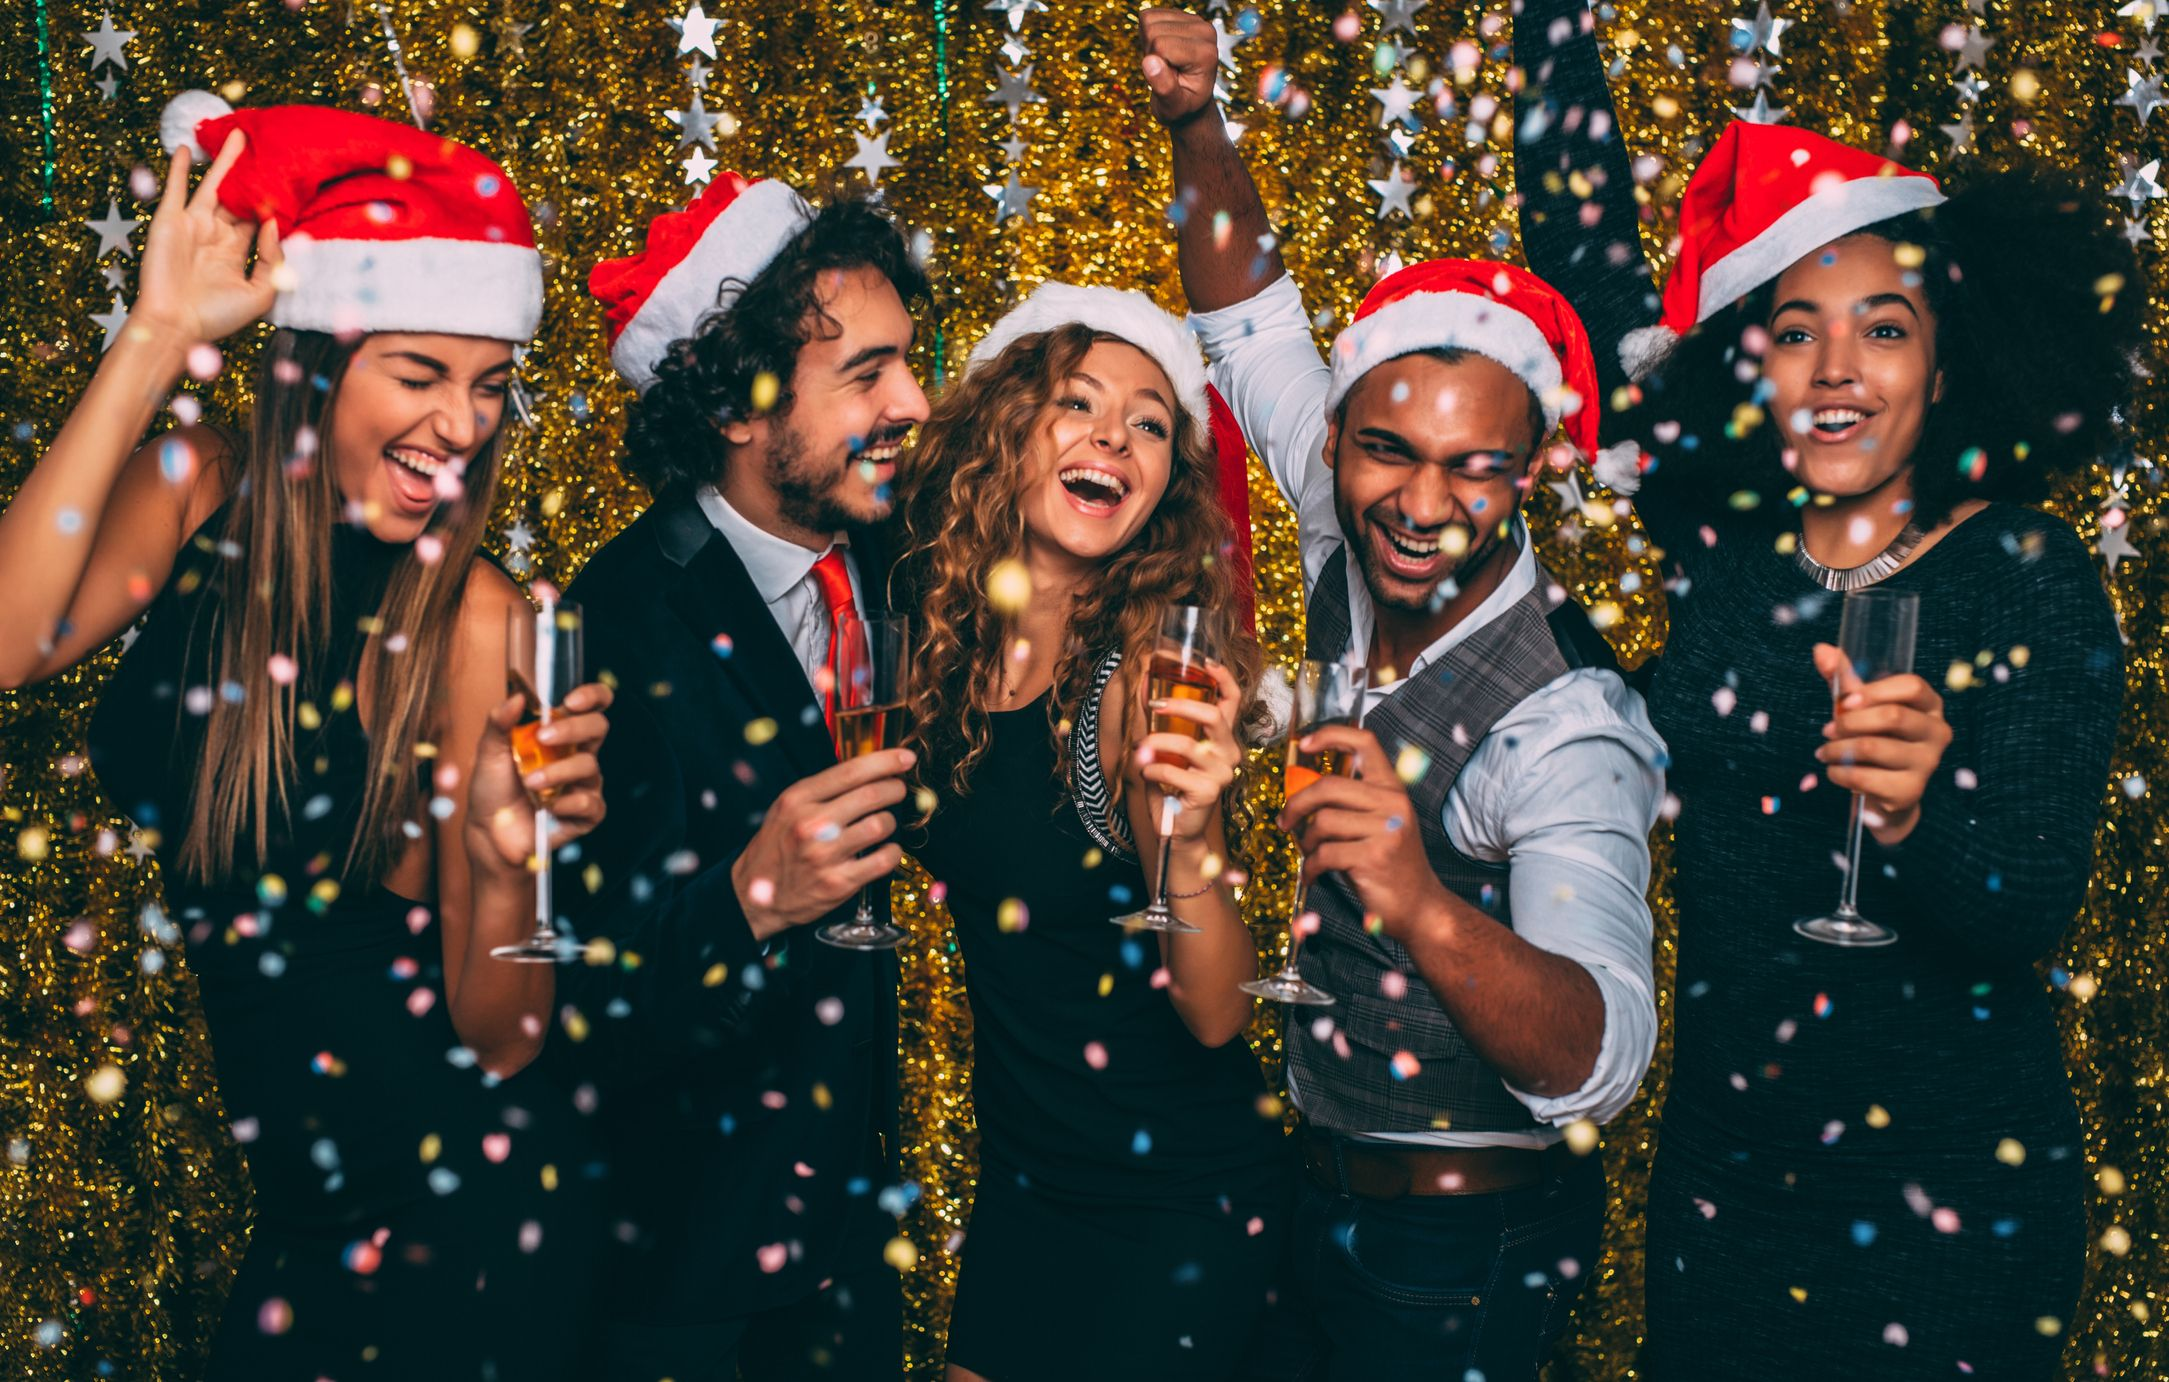 32 Best Christmas Party Themes - Ideas for a Holiday Party